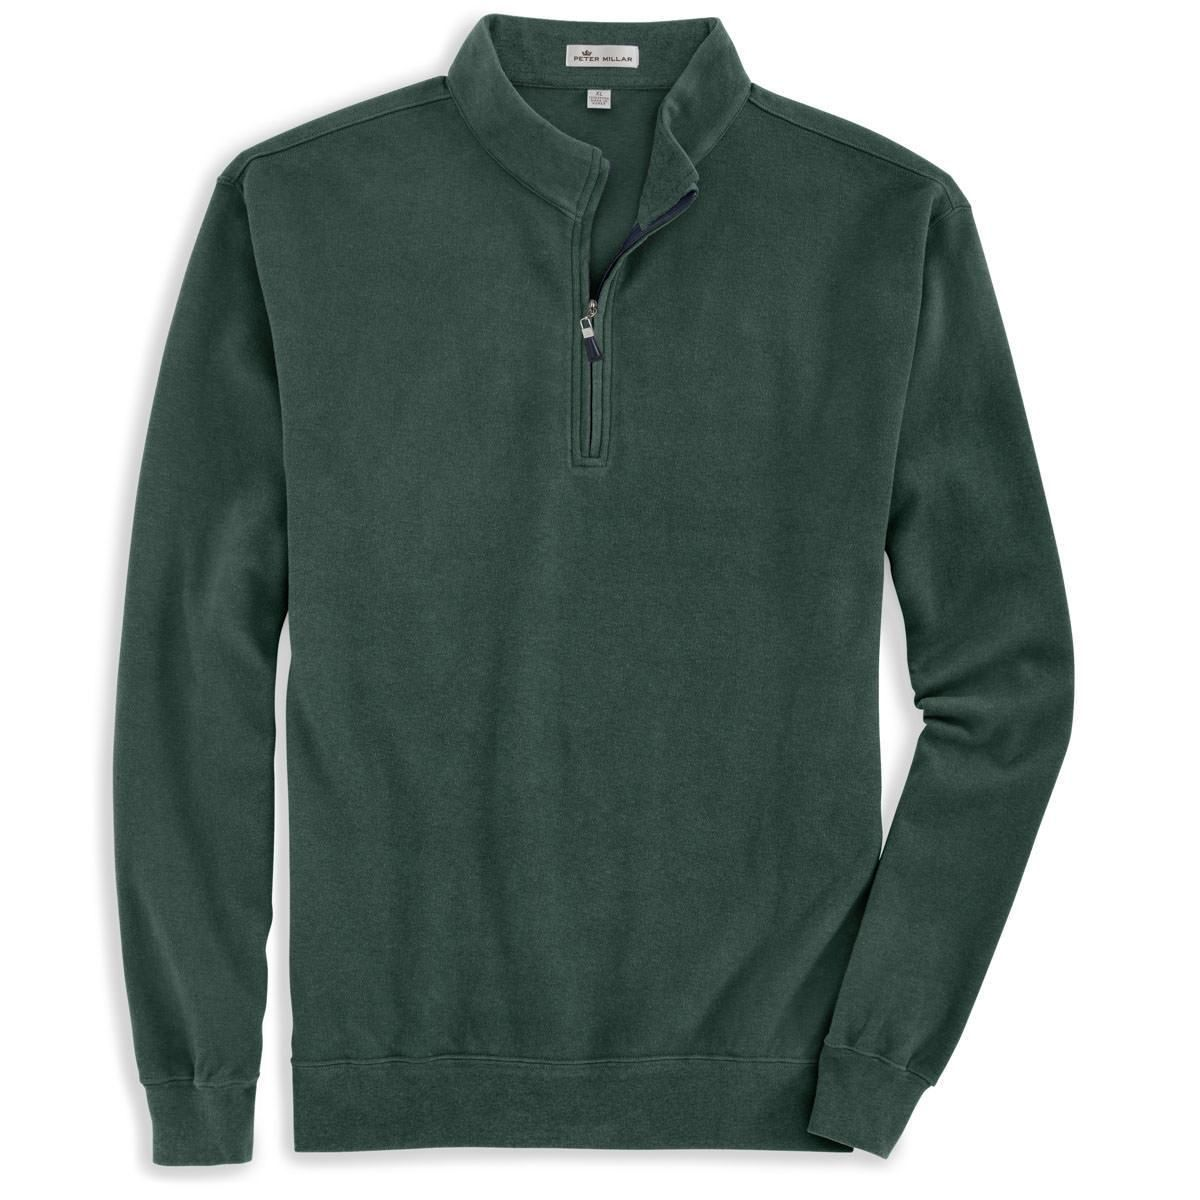 Peter Millar Men S Spur Green Melange Fleece Quarter Zip Clothes